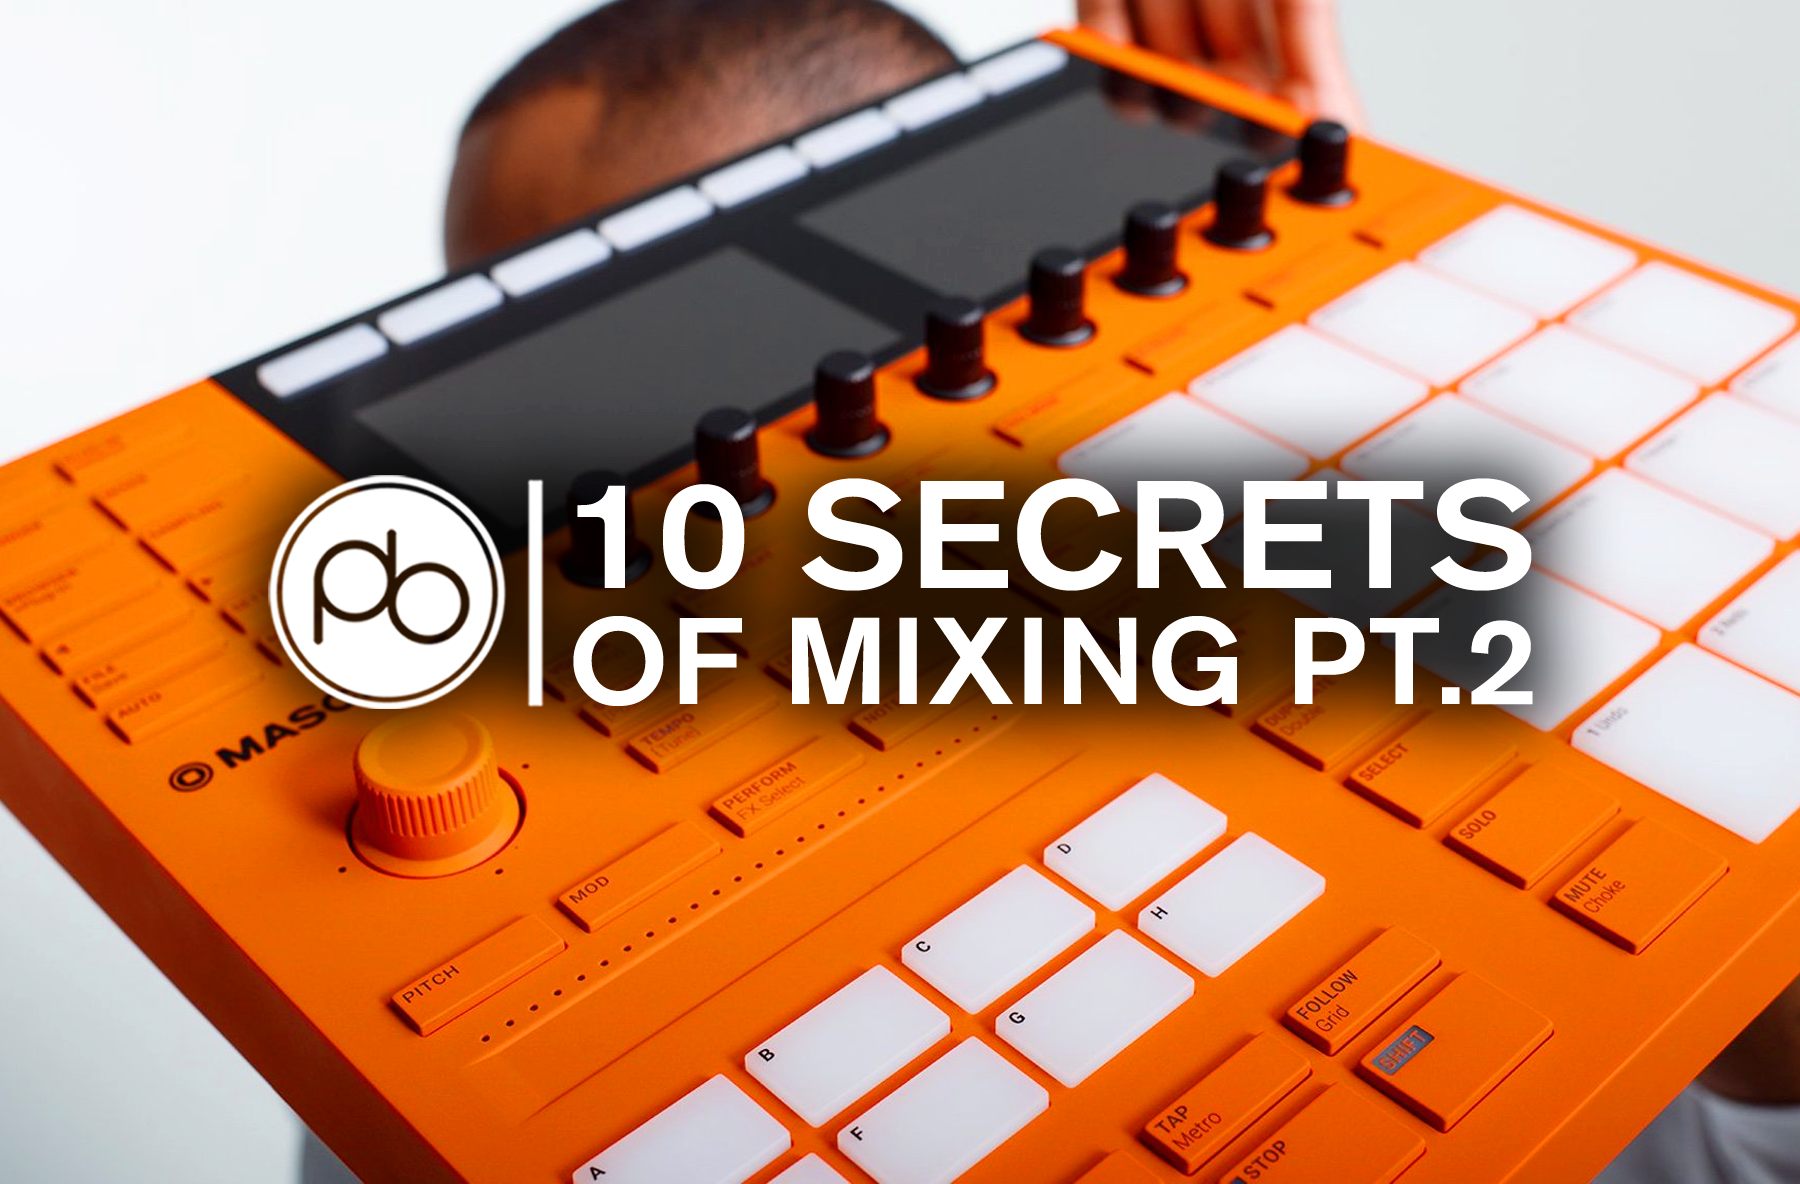 10 Secrets of Mixing with George Wiederkehr & Native Instruments Pt. 2